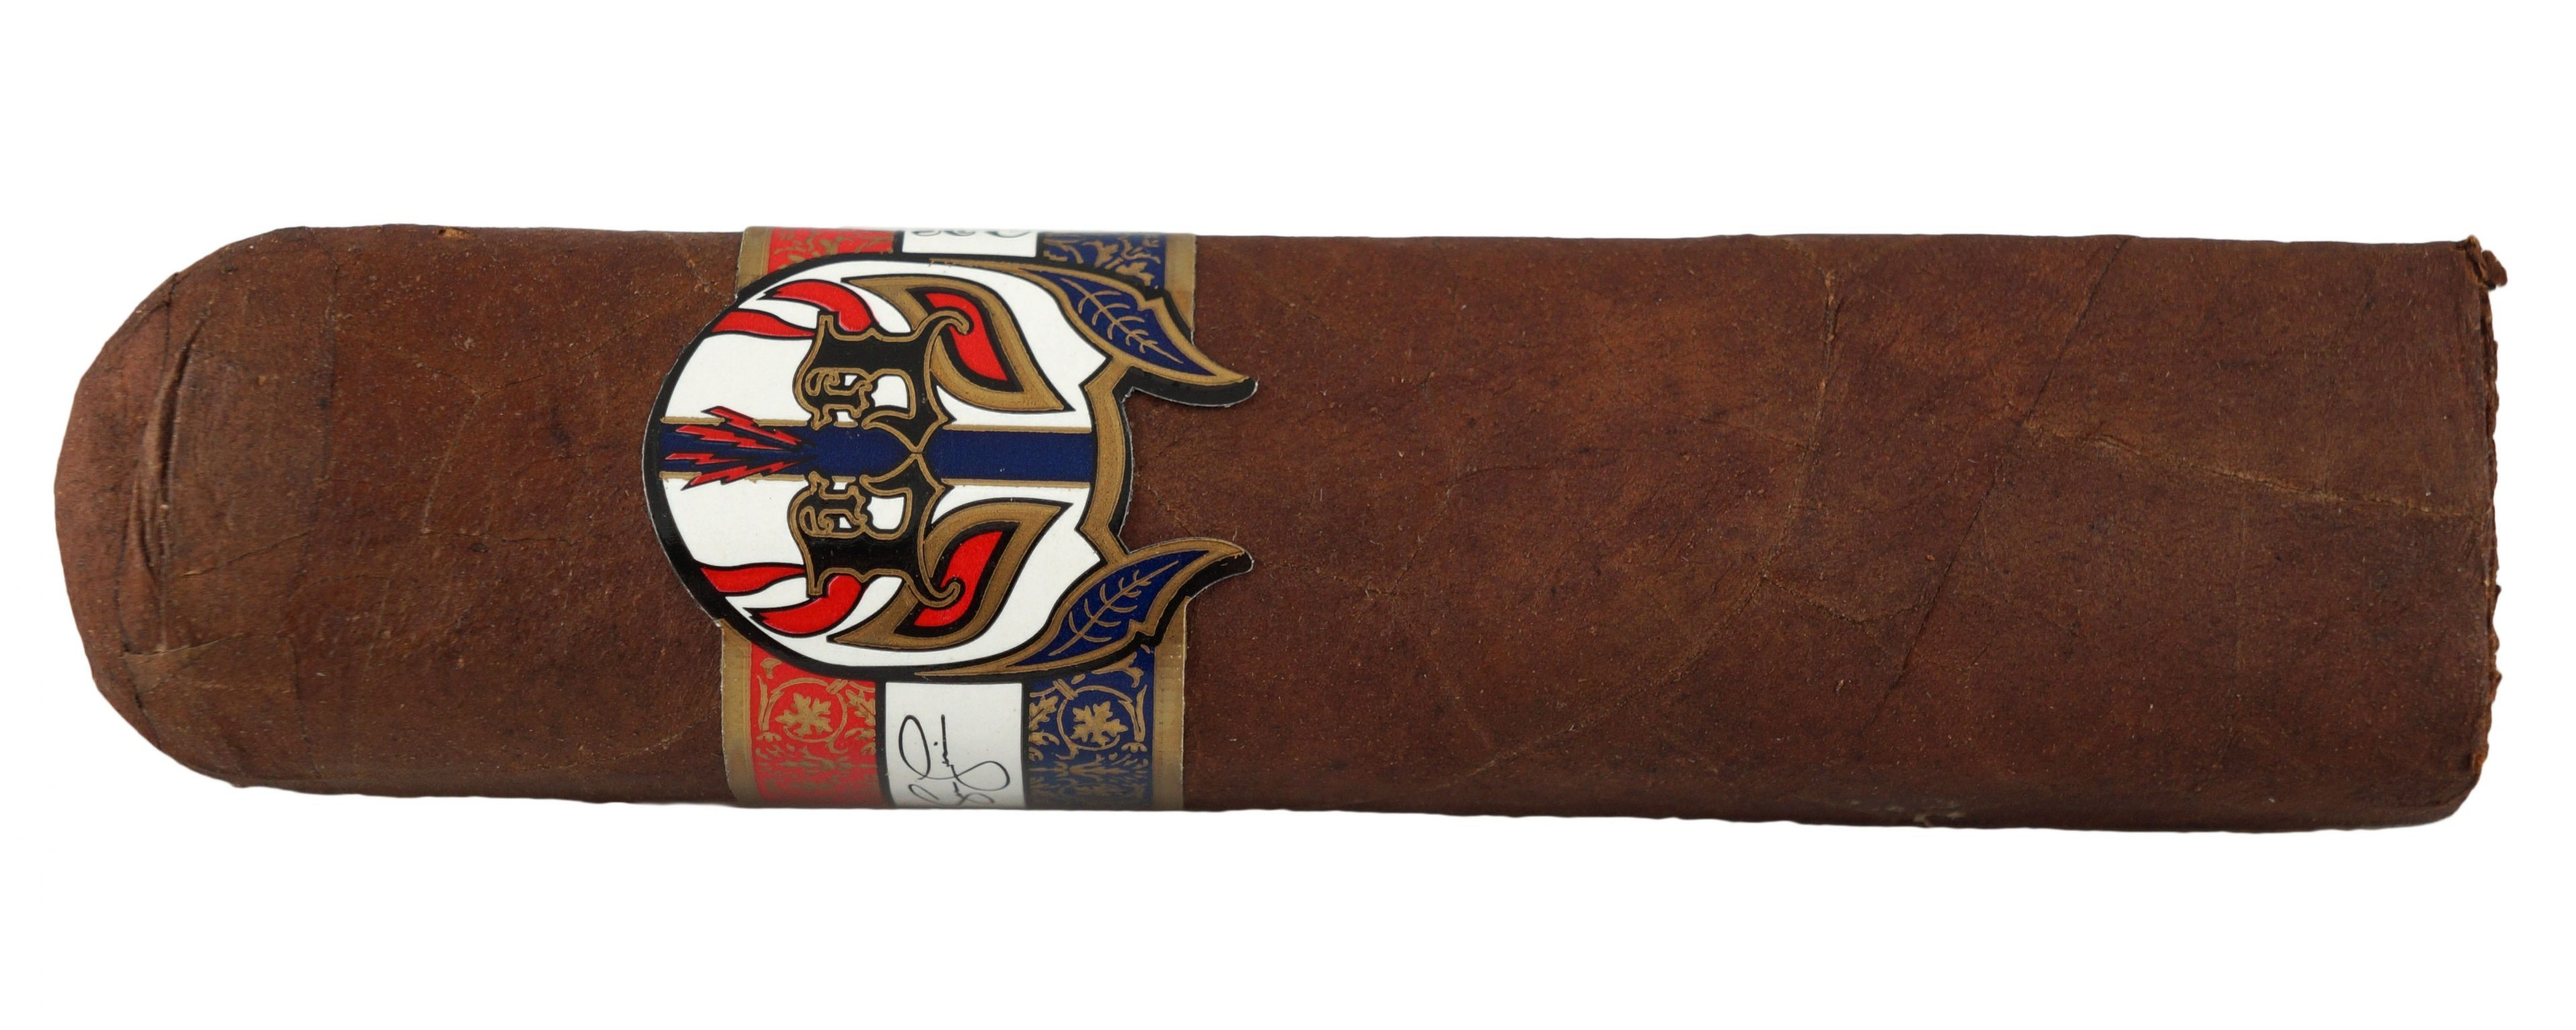 Blind Cigar Review: Leccia | Luchador El Gringo Frog Splash